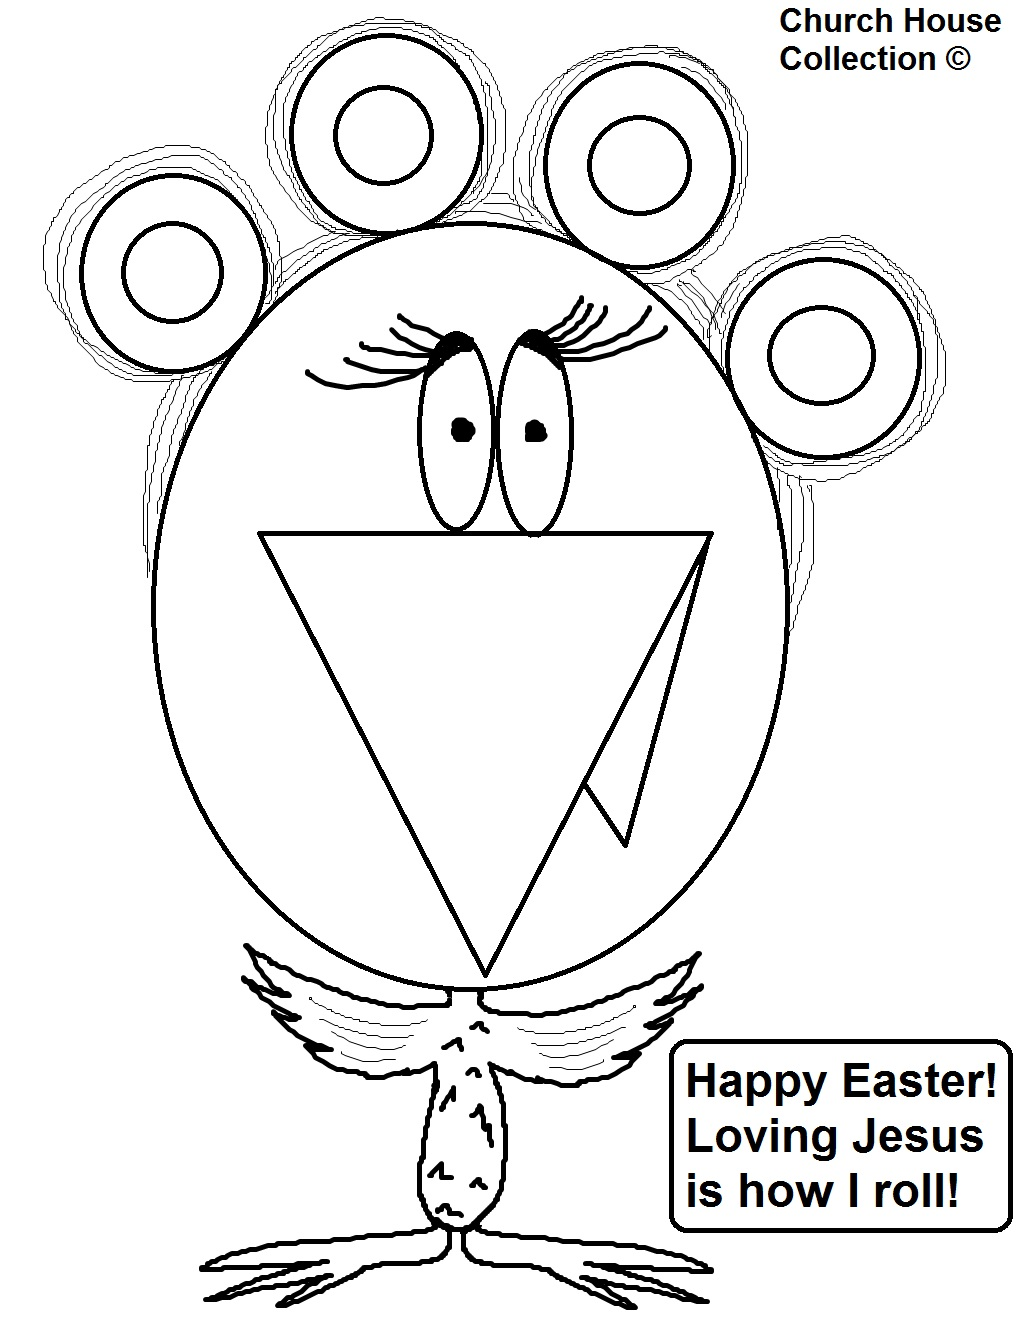 Church House Collection Blog: Christian Easter Coloring